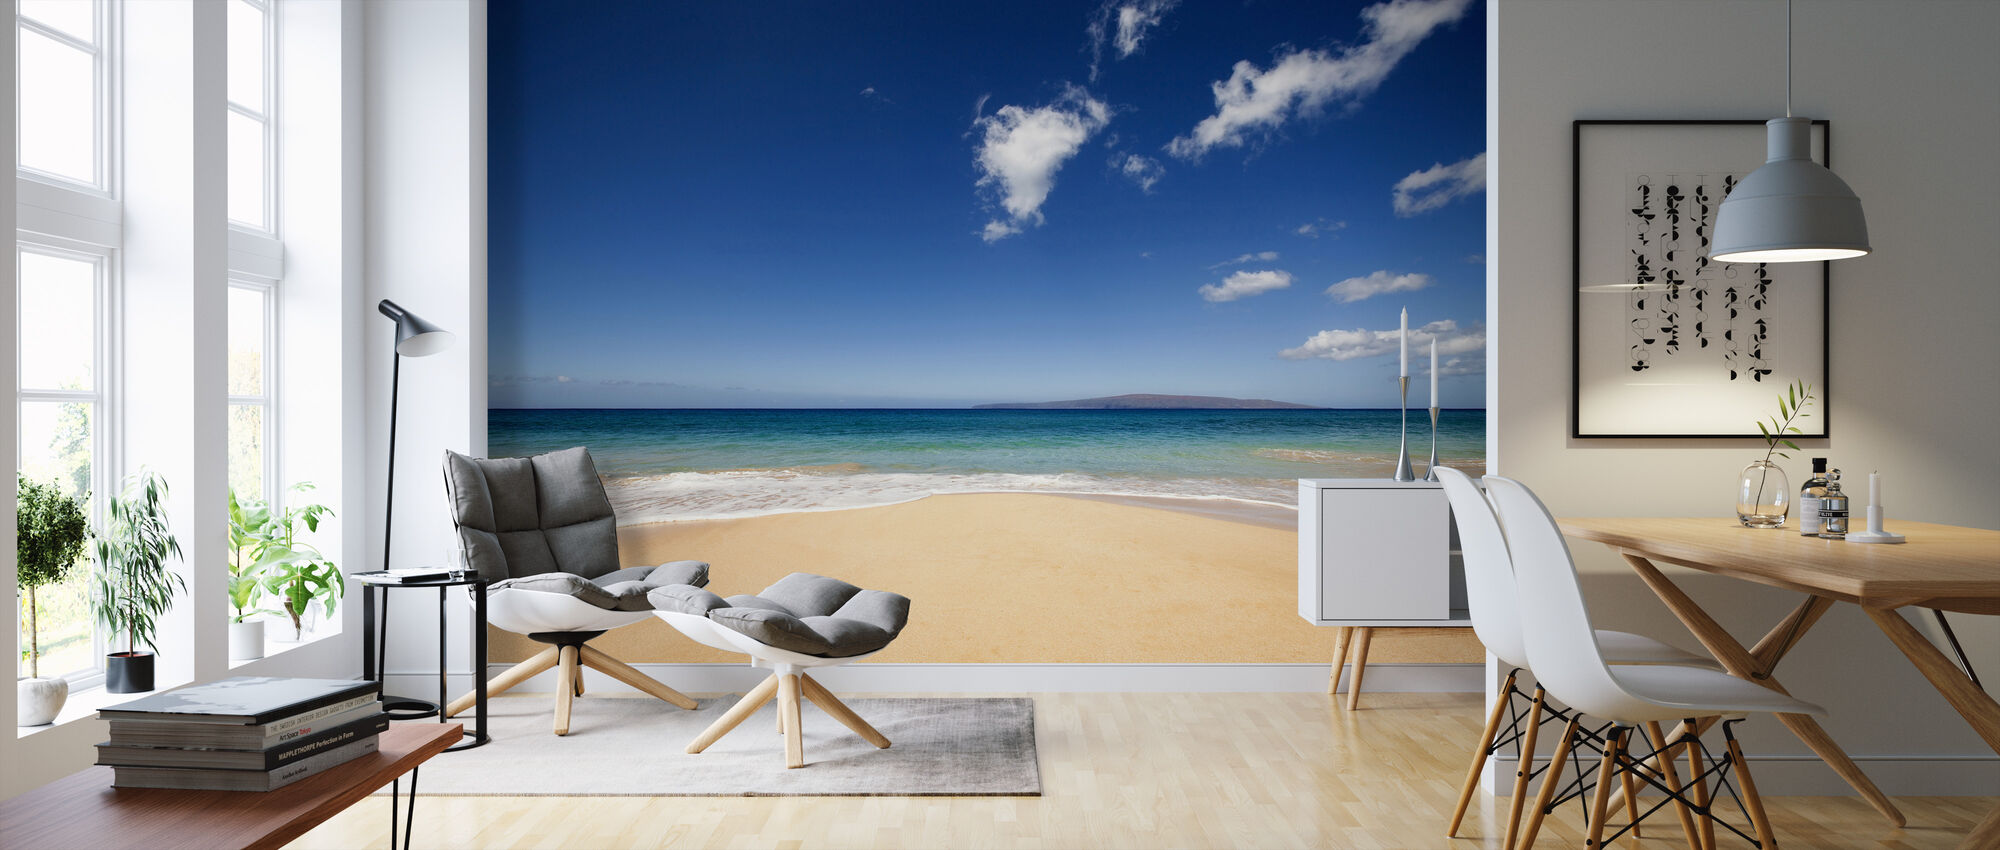 Blue Noon at the Beach - Wallpaper - Living Room